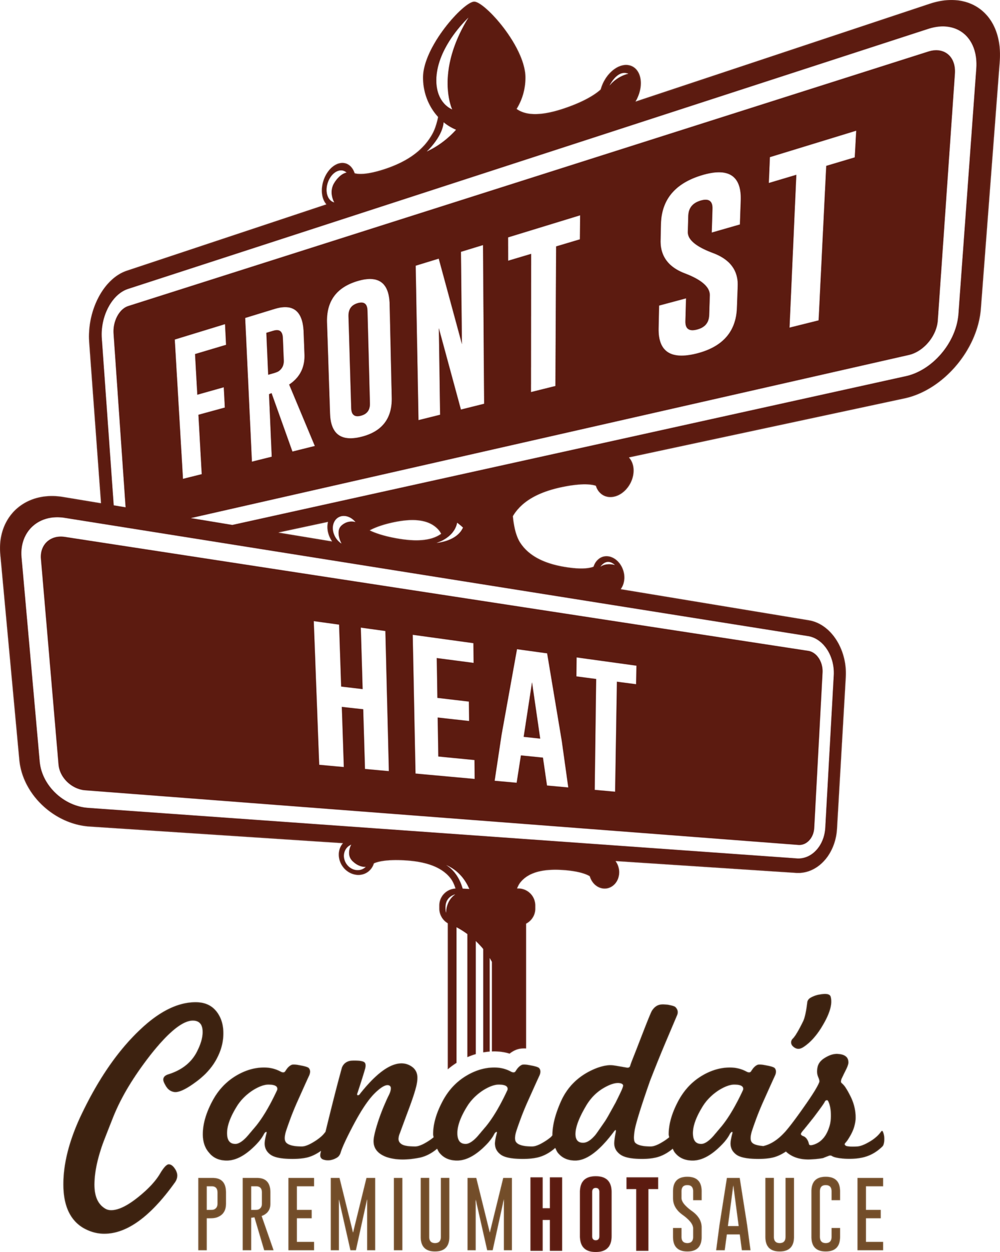 Front-St-Heat-Canadas.png